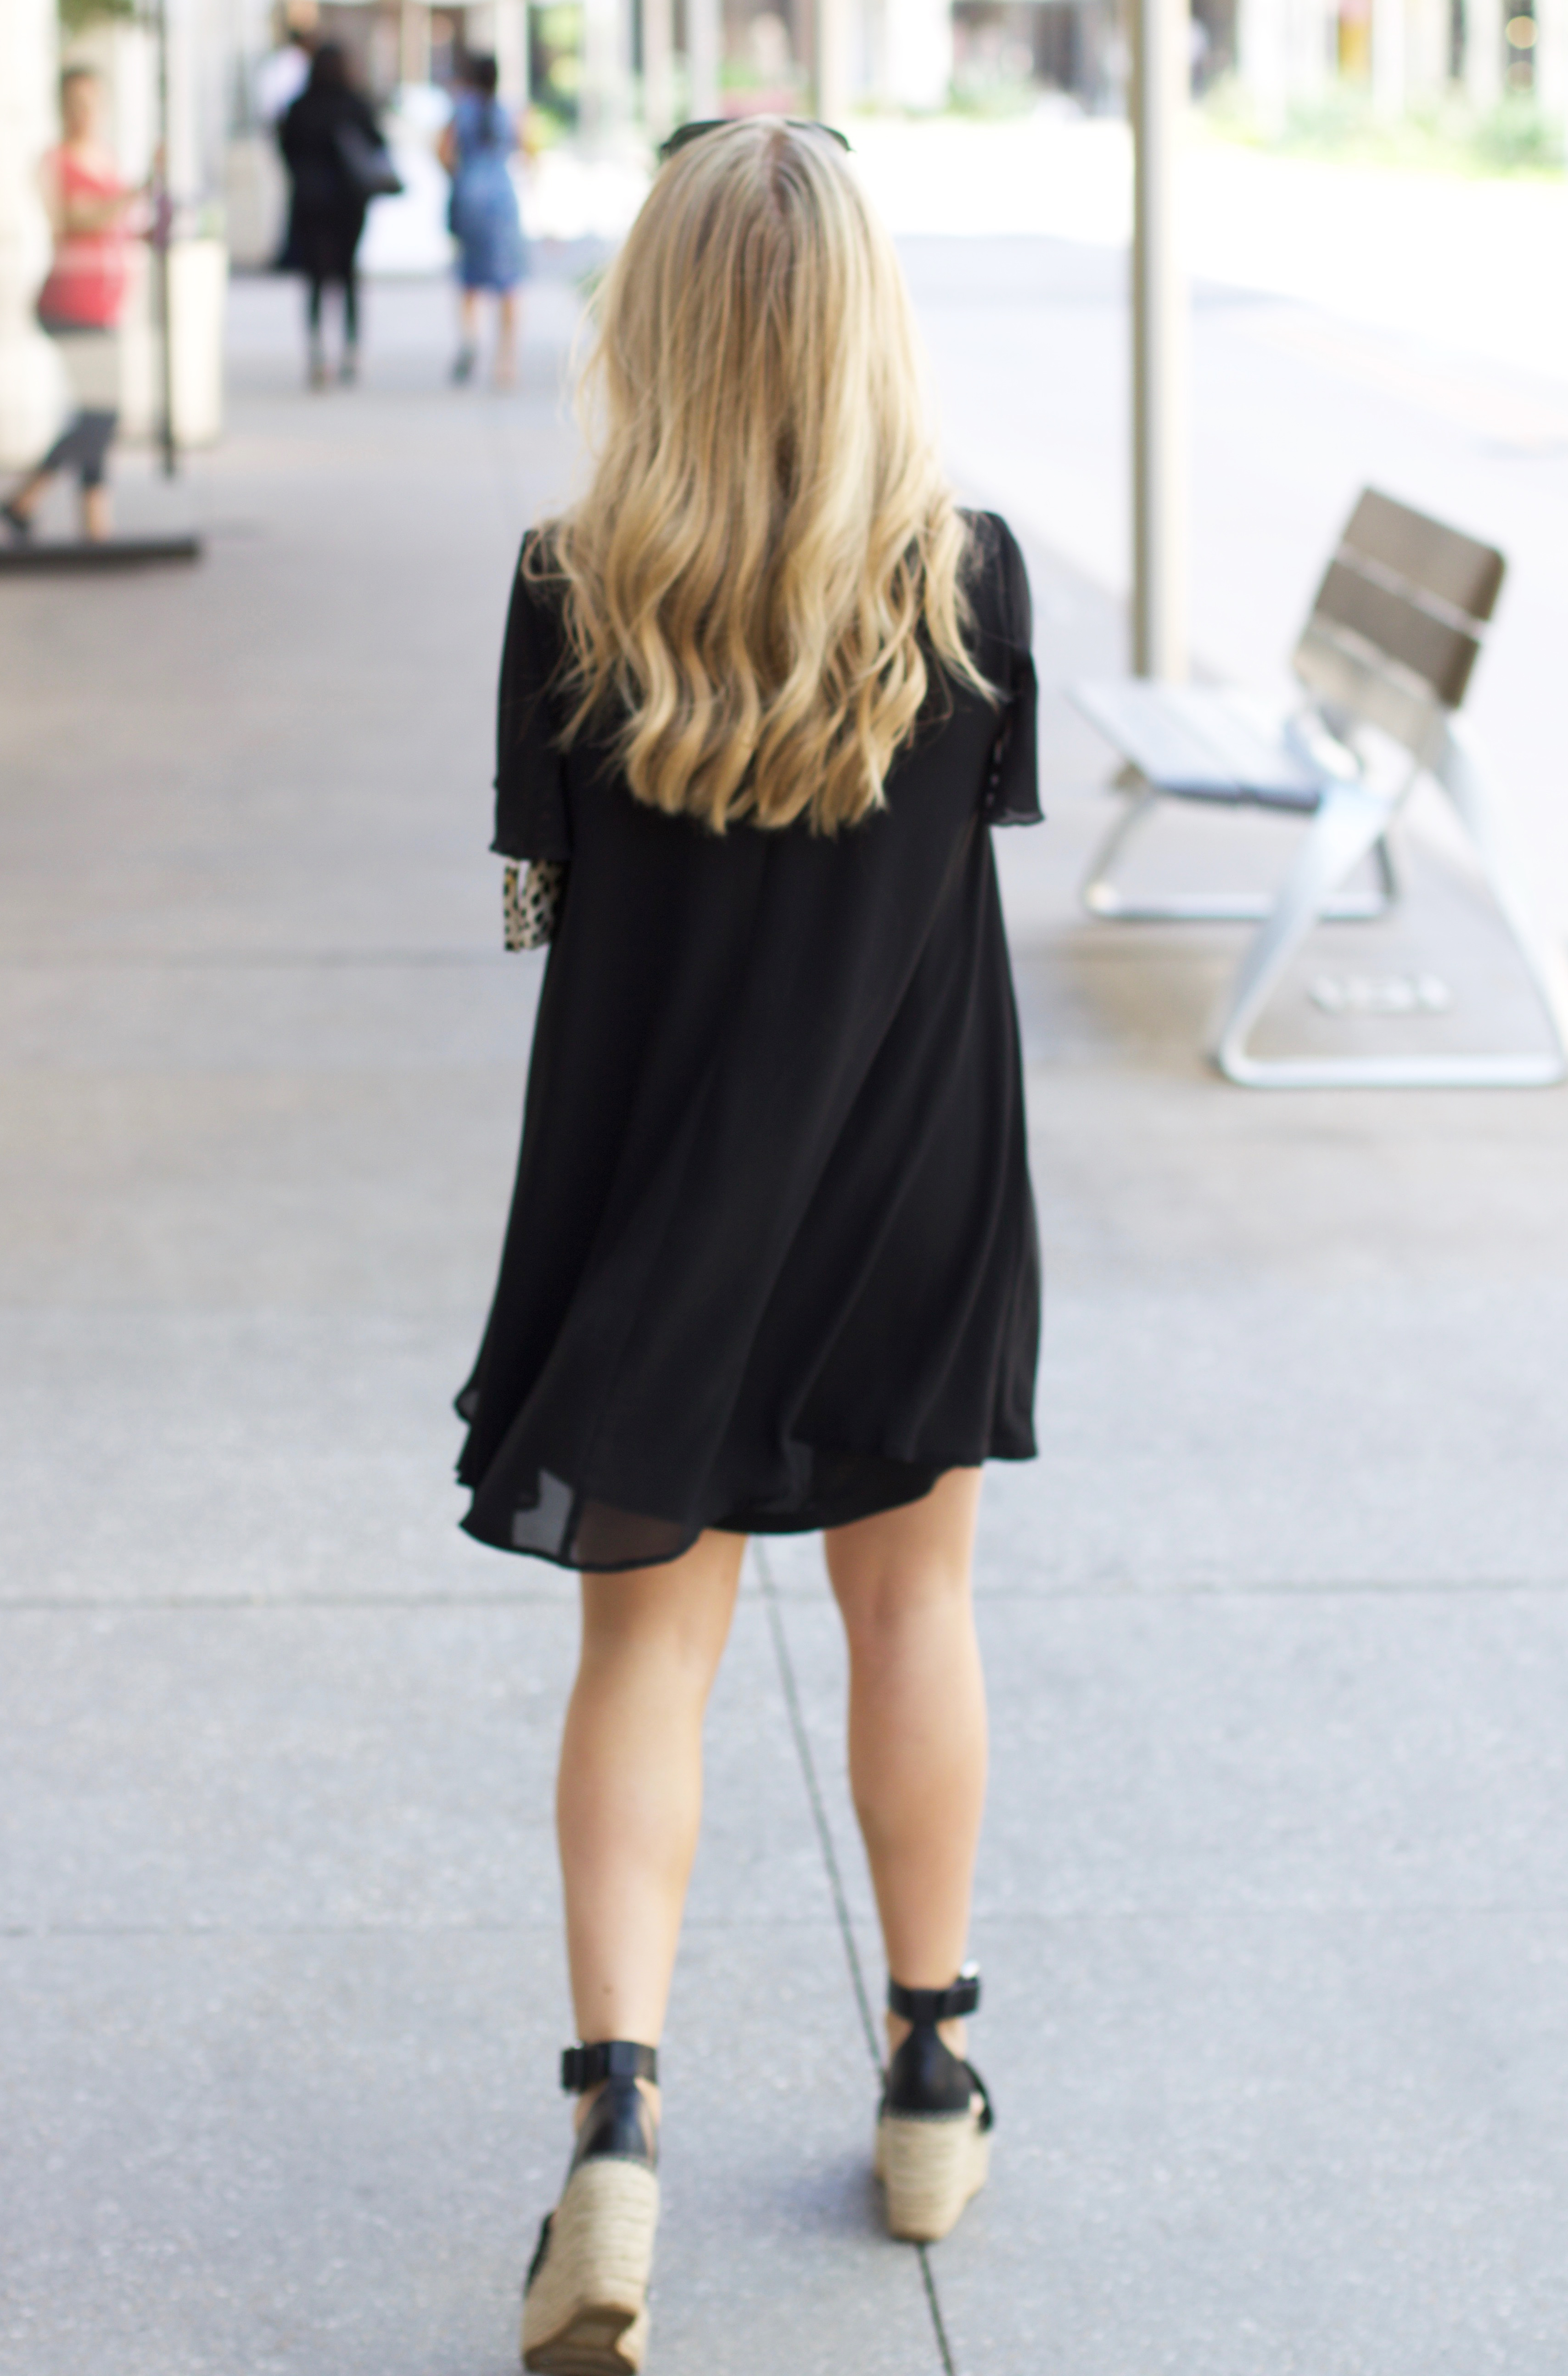 How To Wear Black In The Spring